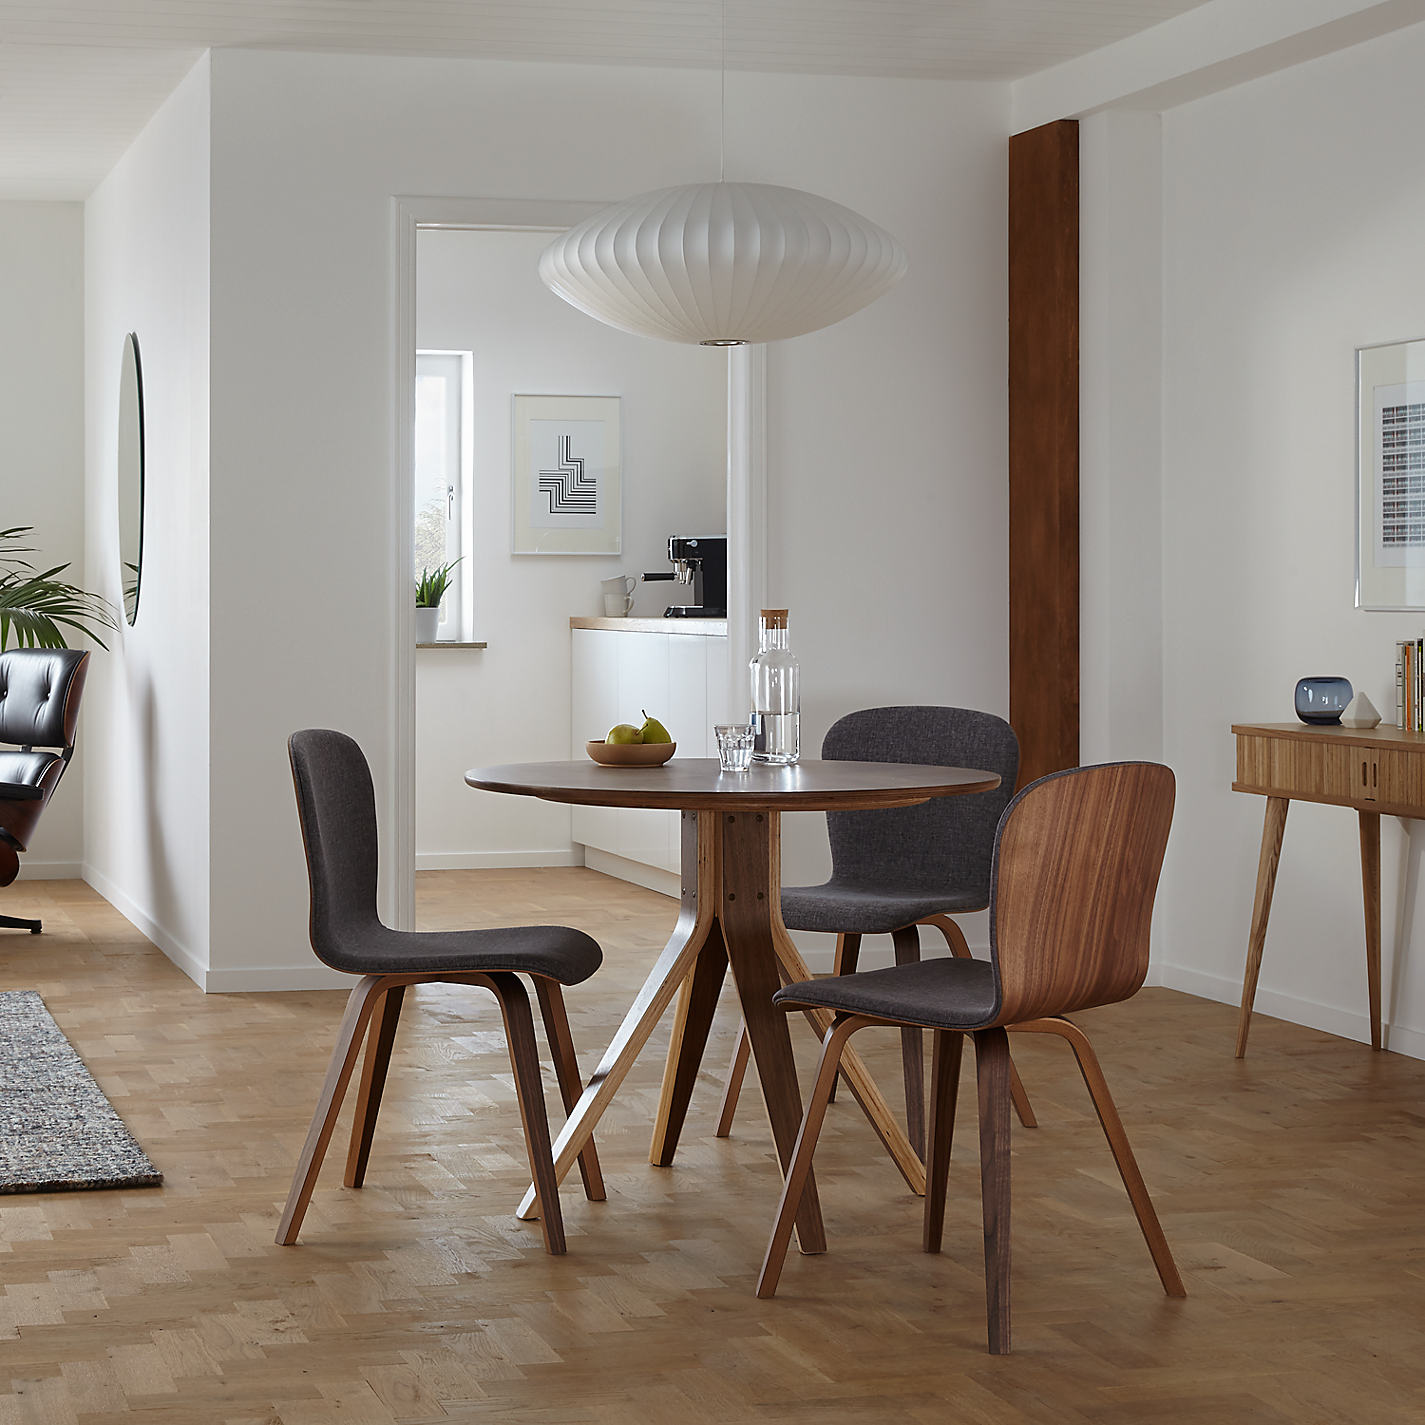 Buy John Lewis Radar 4 Seater Round Dining Table Online at johnlewis com. Buy John Lewis Radar 4 Seater Round Dining Table   John Lewis